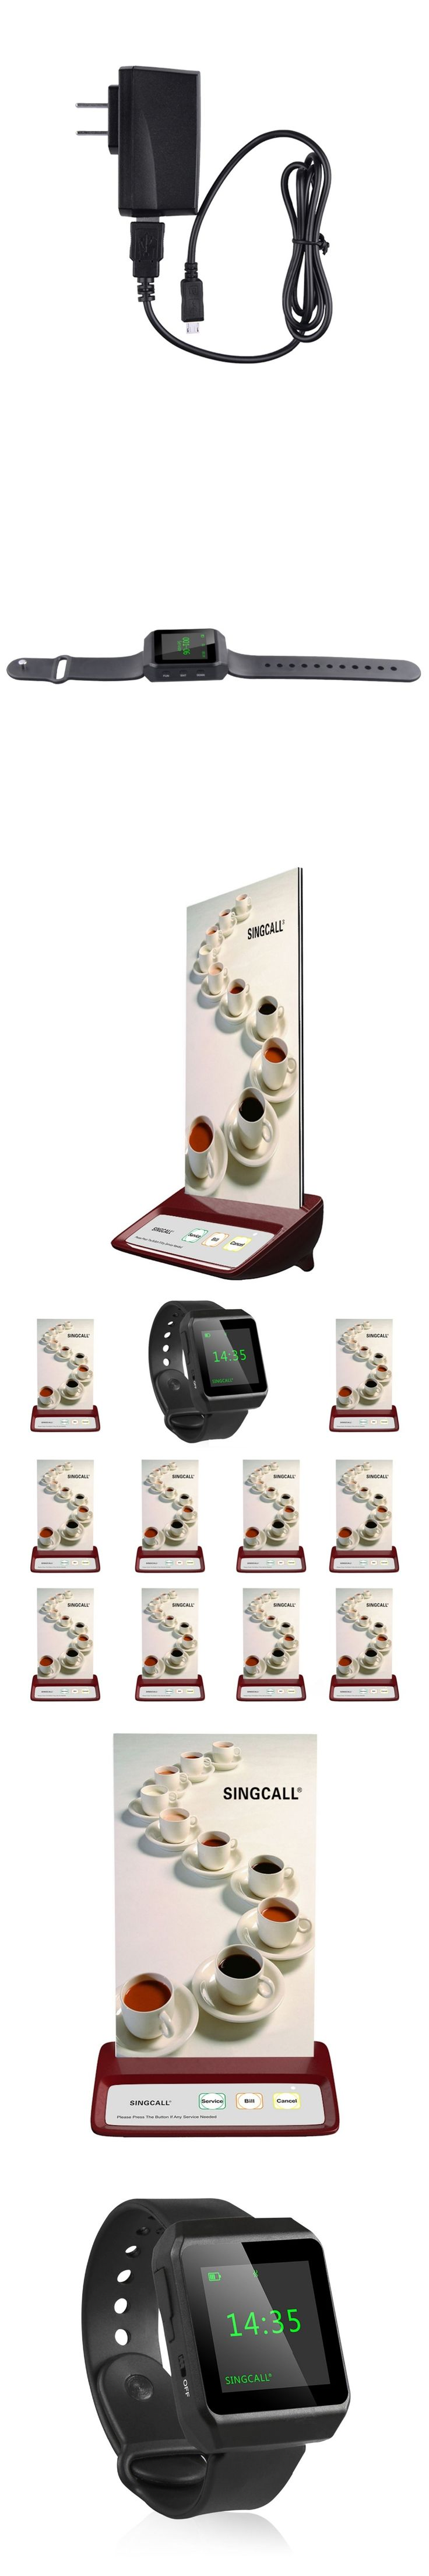 SINGCALL bell wireless service, pressing the call button,1 mobile watch receiver, 10 table bell for shop restaurant